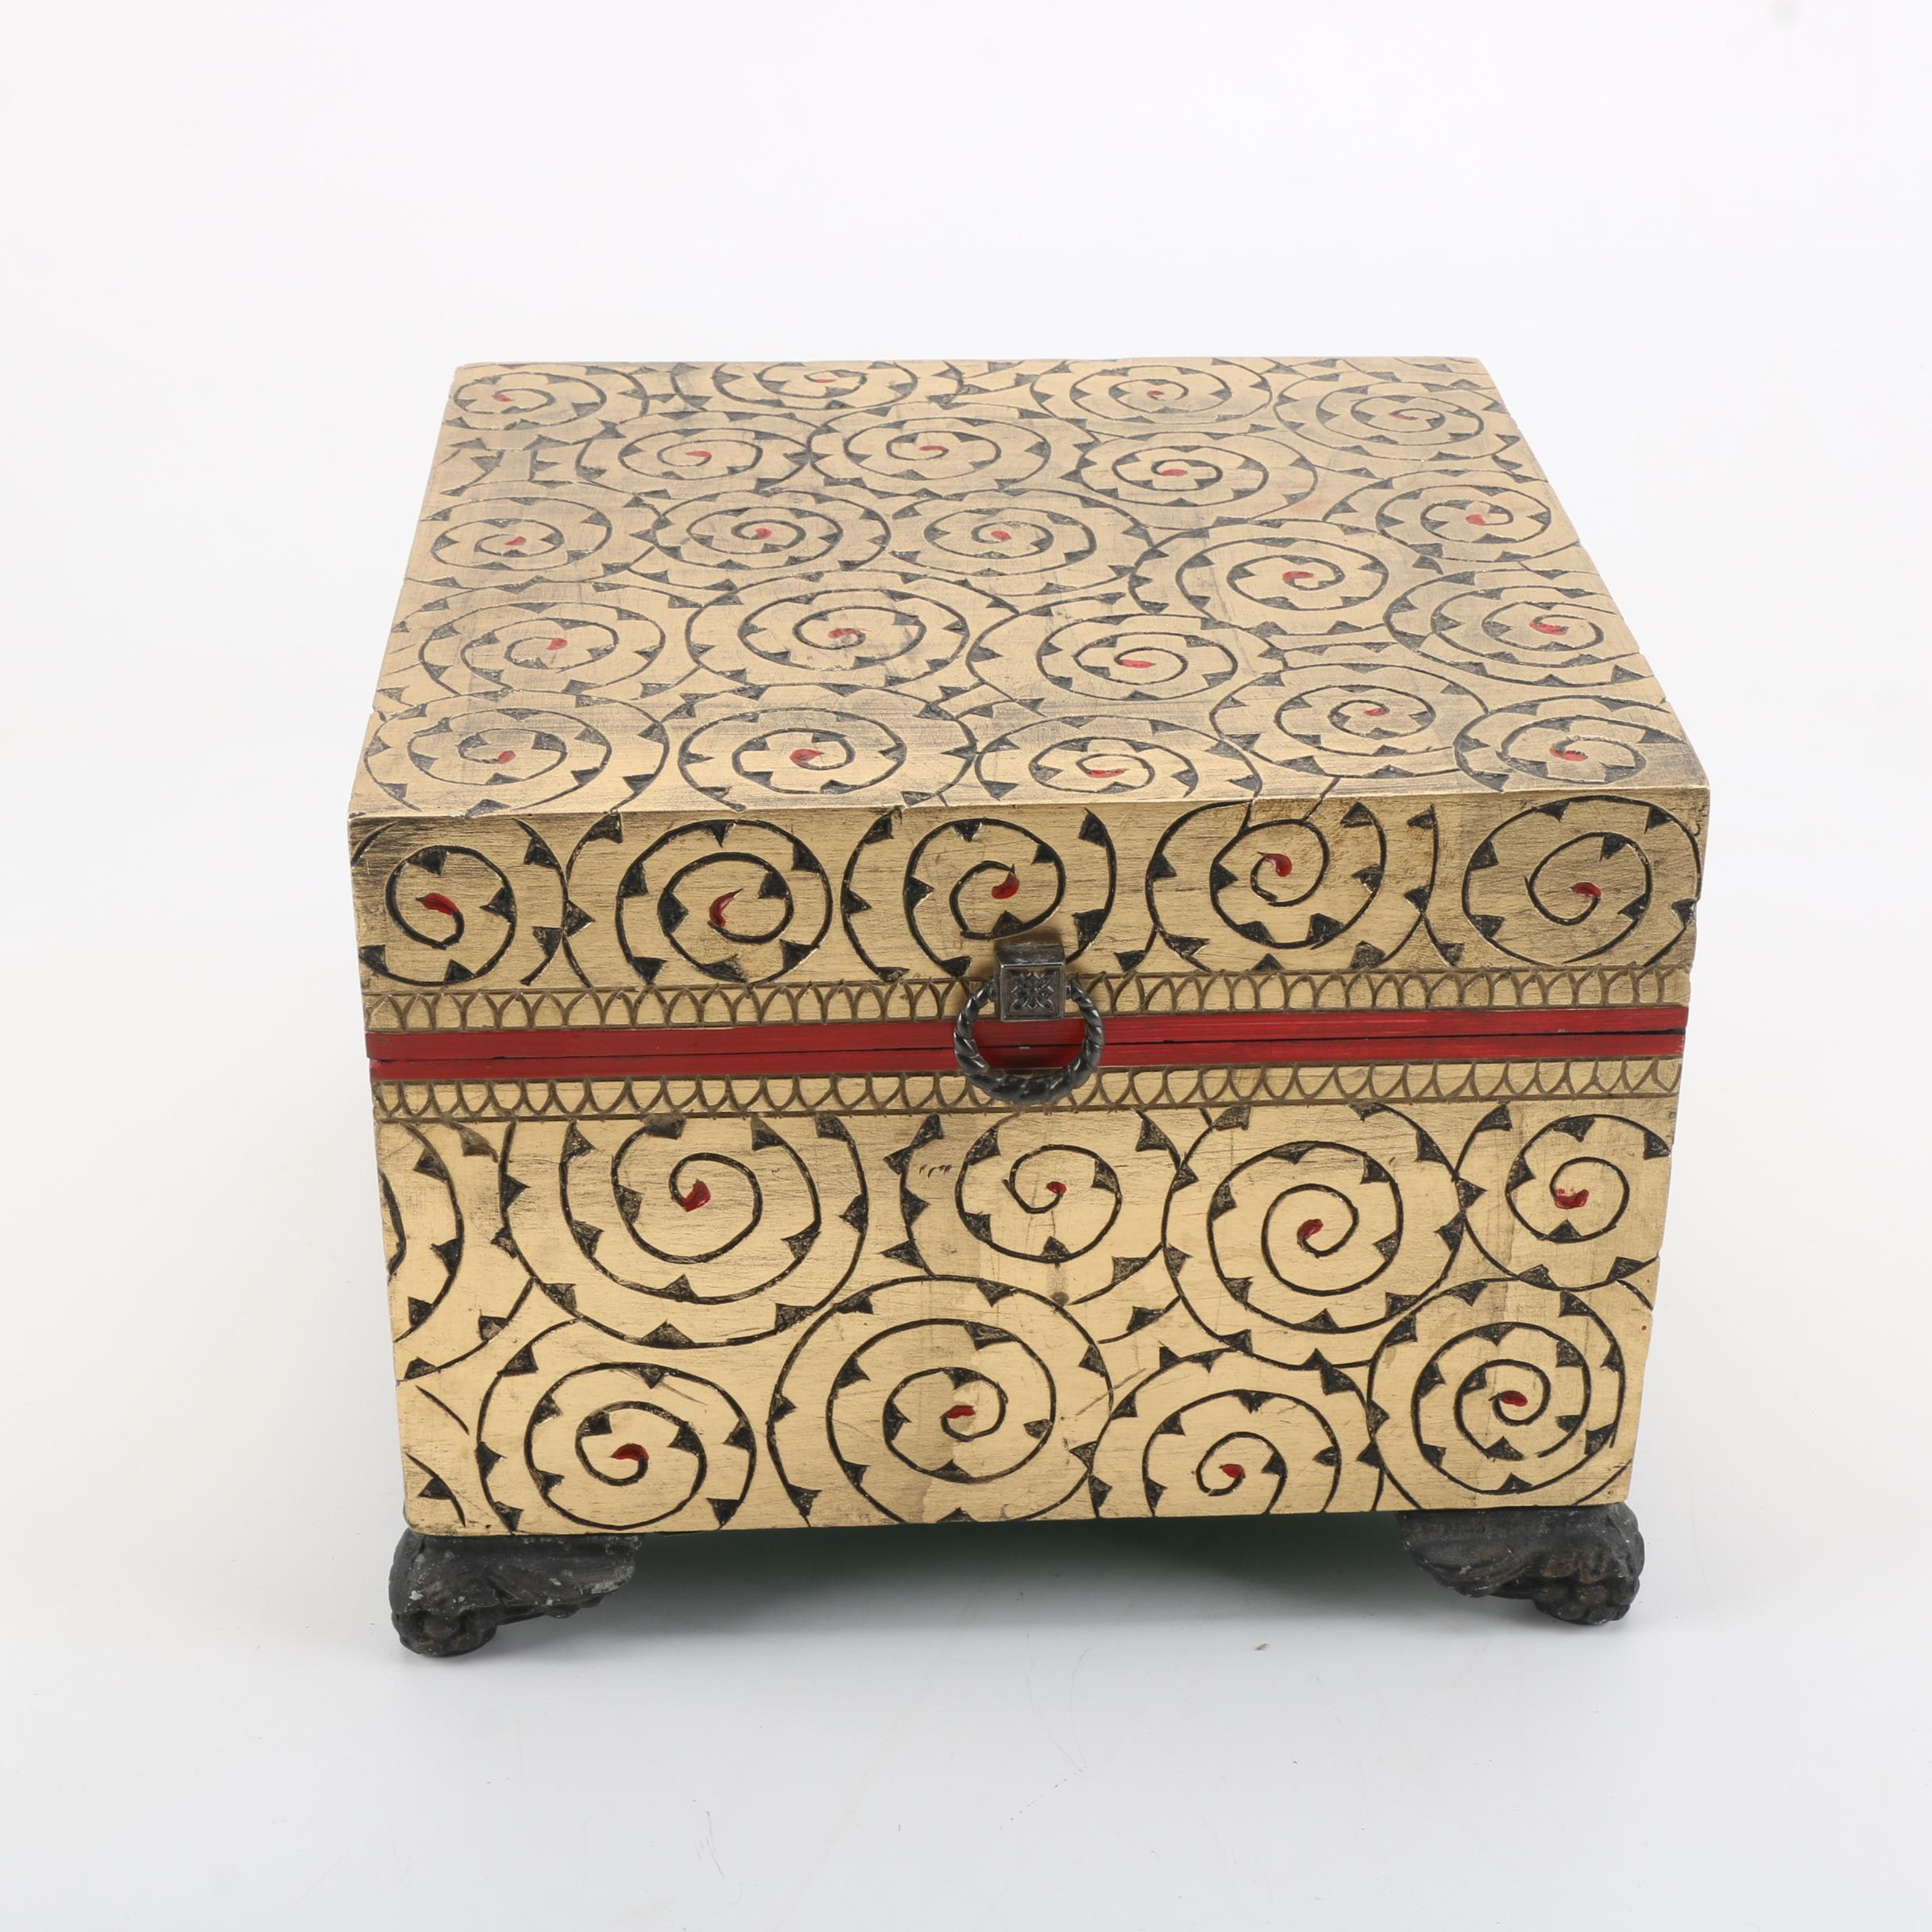 Scrolled Gold Tone Wooden Chest